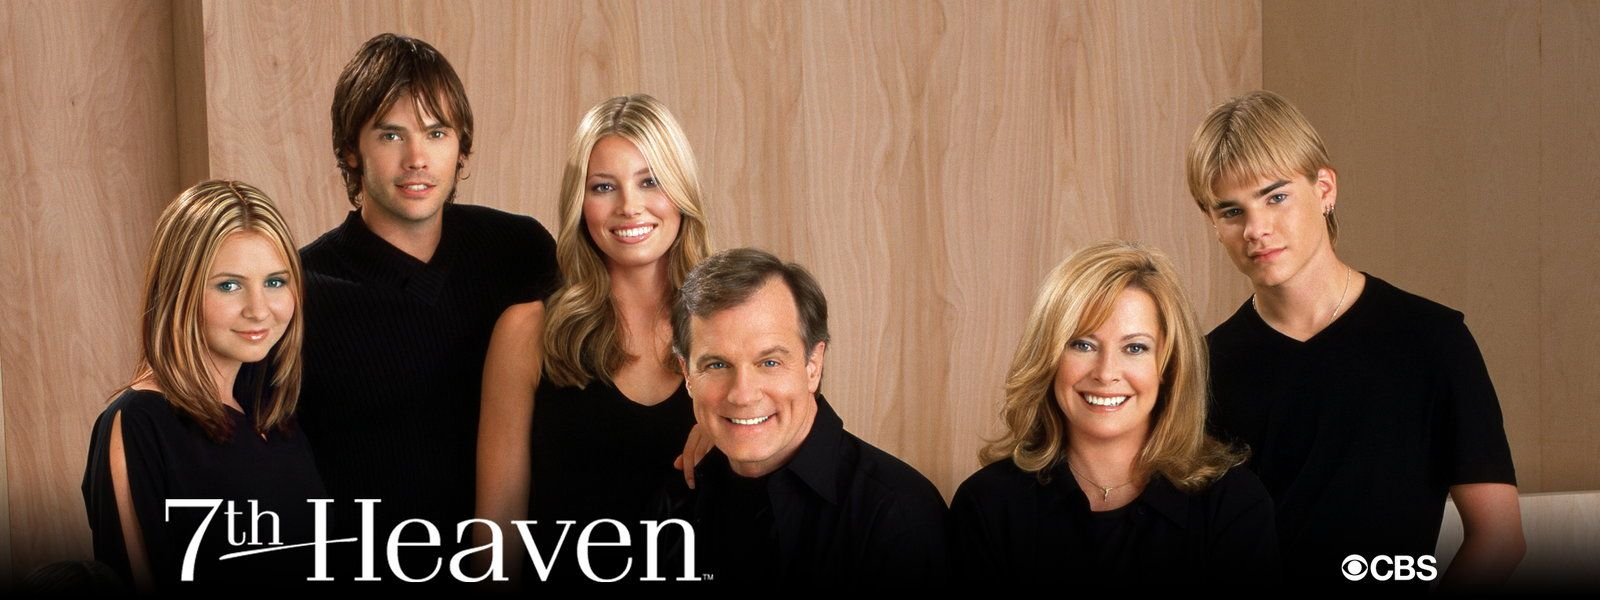 Seventh Heaven Online Free